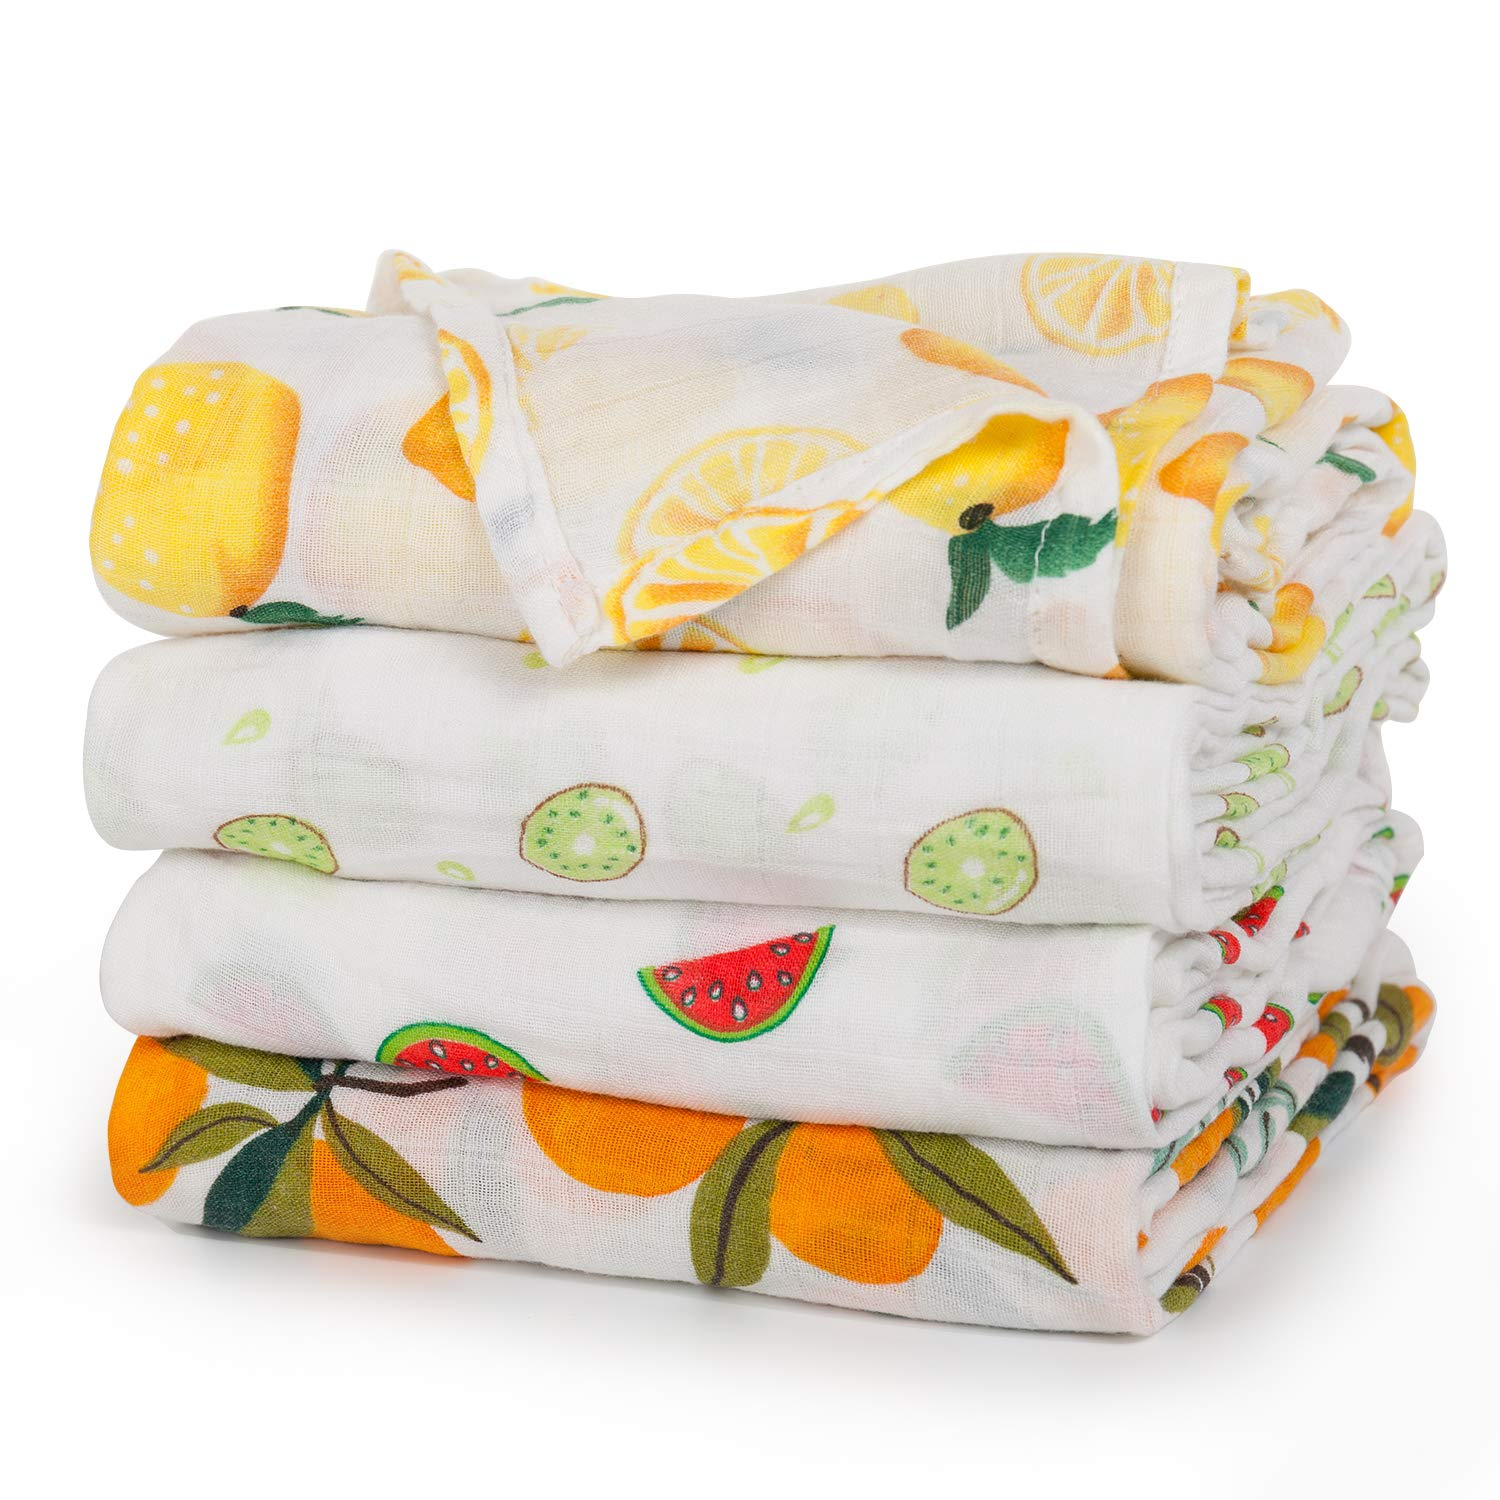 Baby Cotton Muslin Newborn Toddler Baby Blanket Stripped Blankets Bath Gauze Infant Sleepsack Swaddle Wrap Bedding Covers